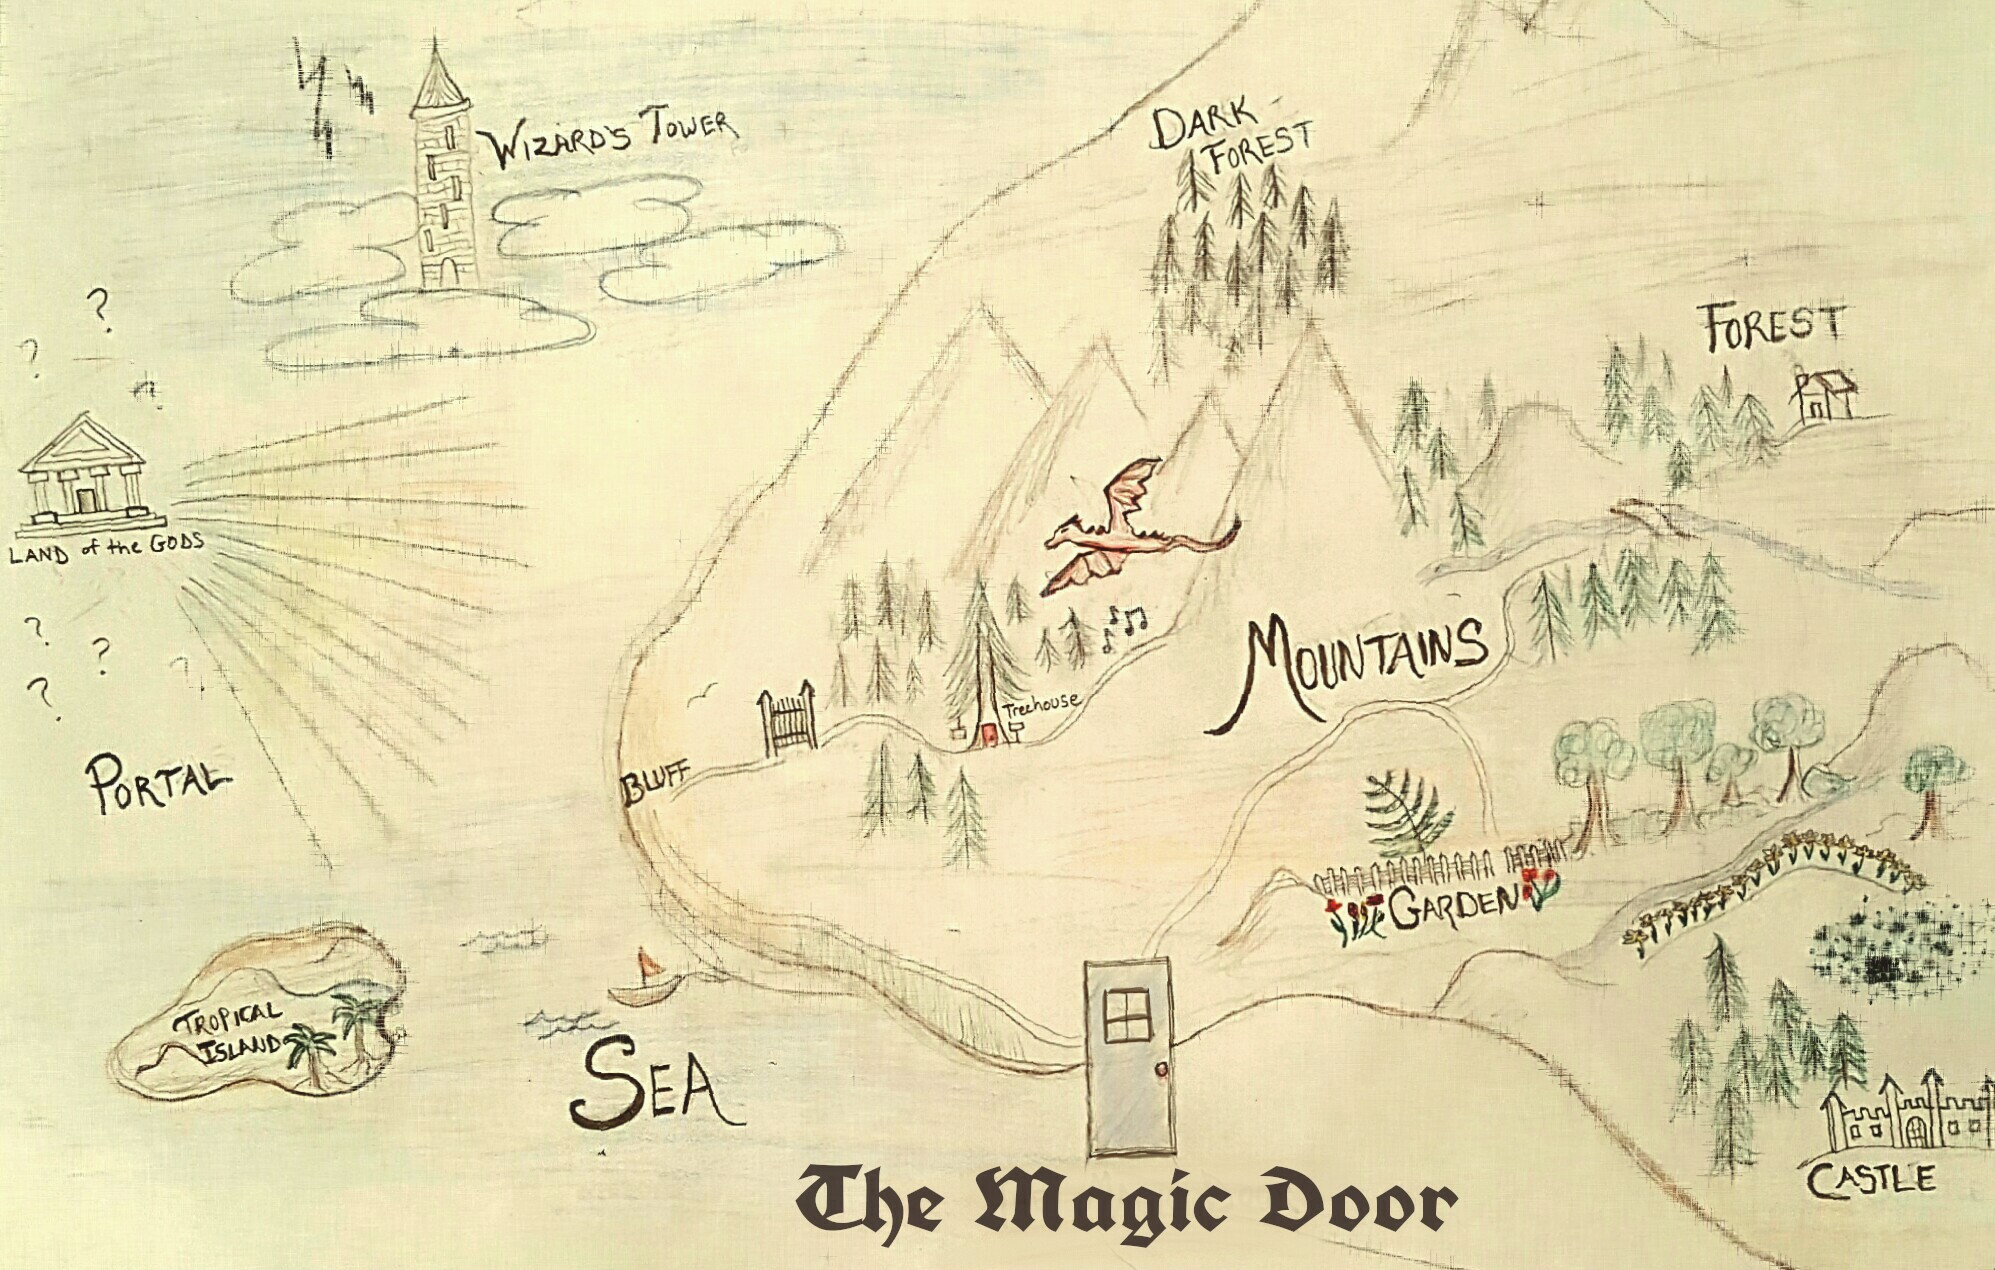 The Magic Door Map